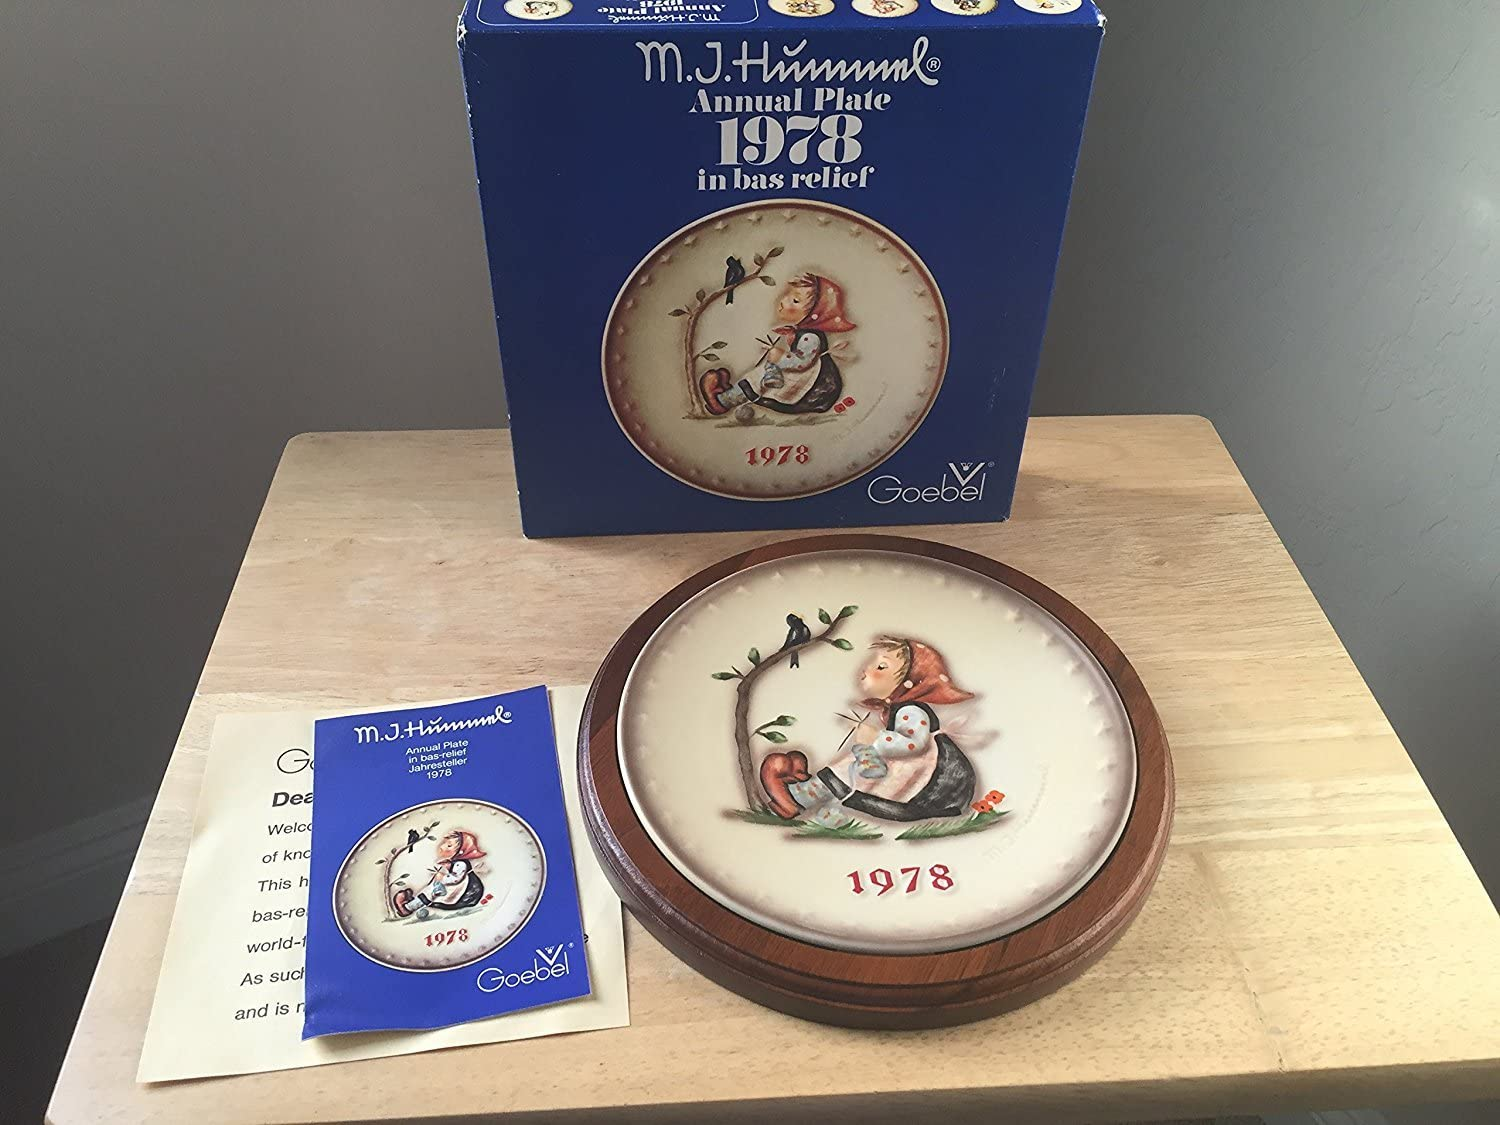 1975 Goebel Hummel Annual Collector Plate